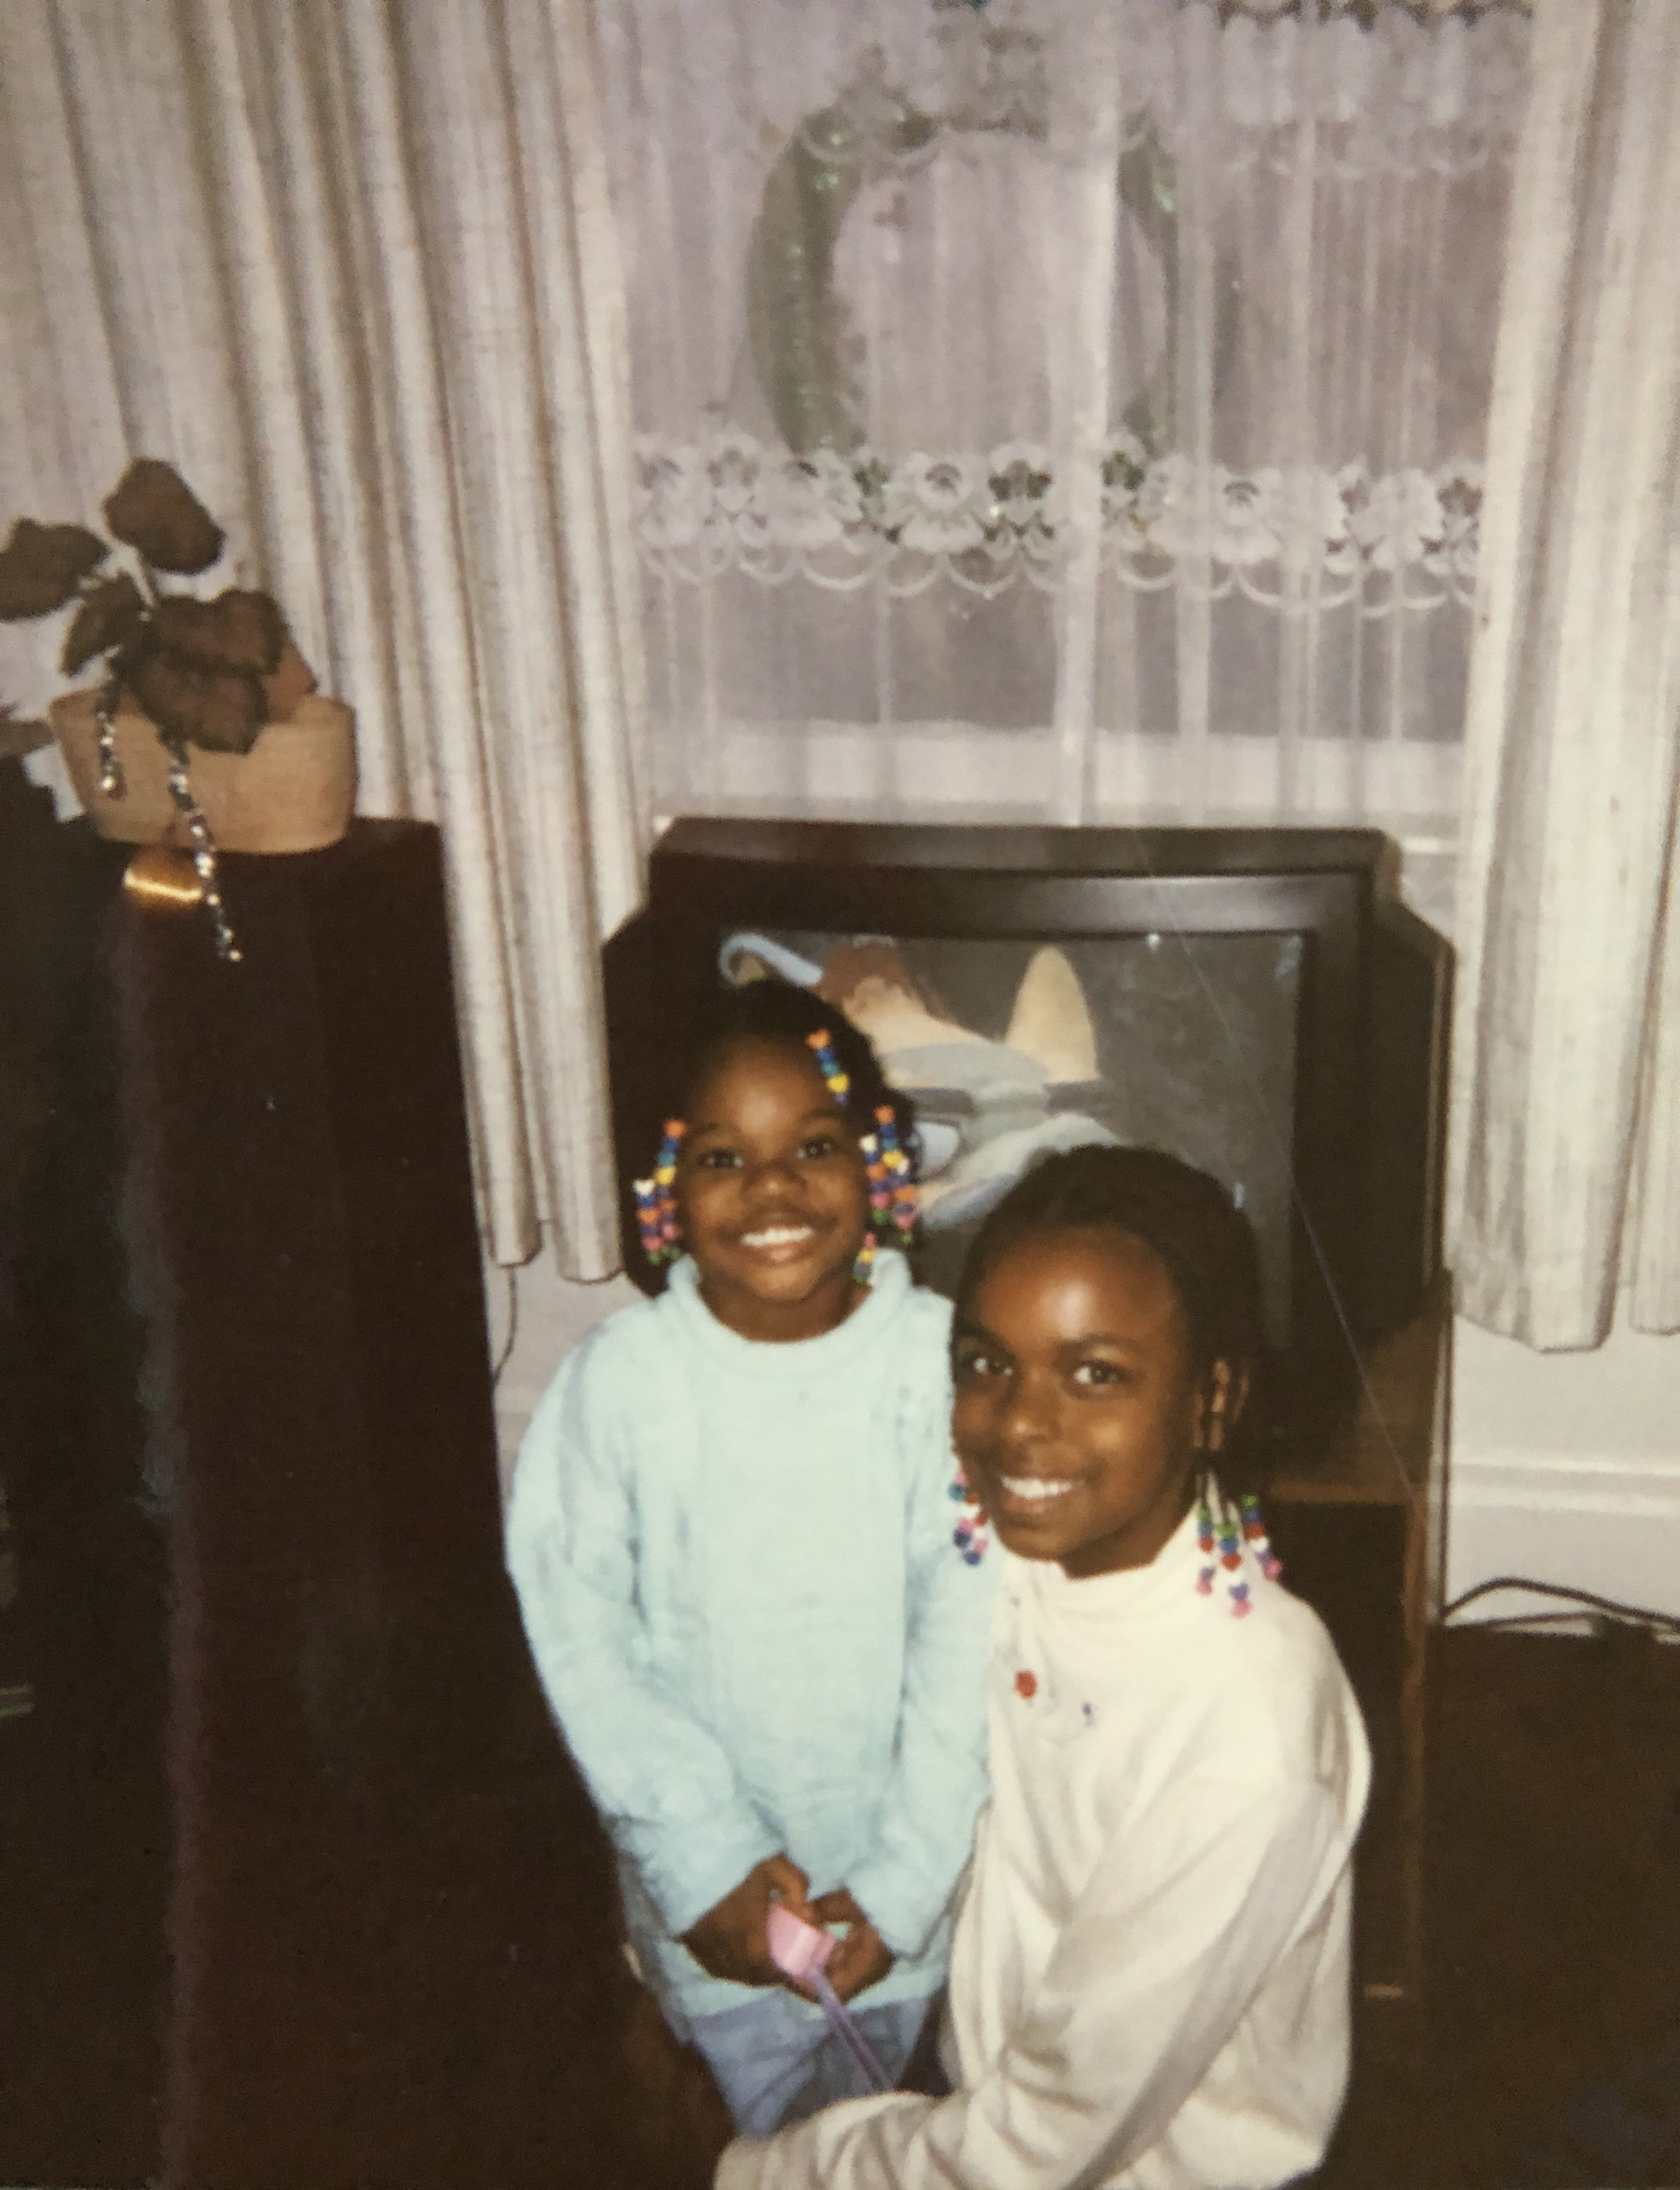 Darice Stanford (pictured, left) with her cousin in the early 1990s. Courtesy of Darice Sanford.